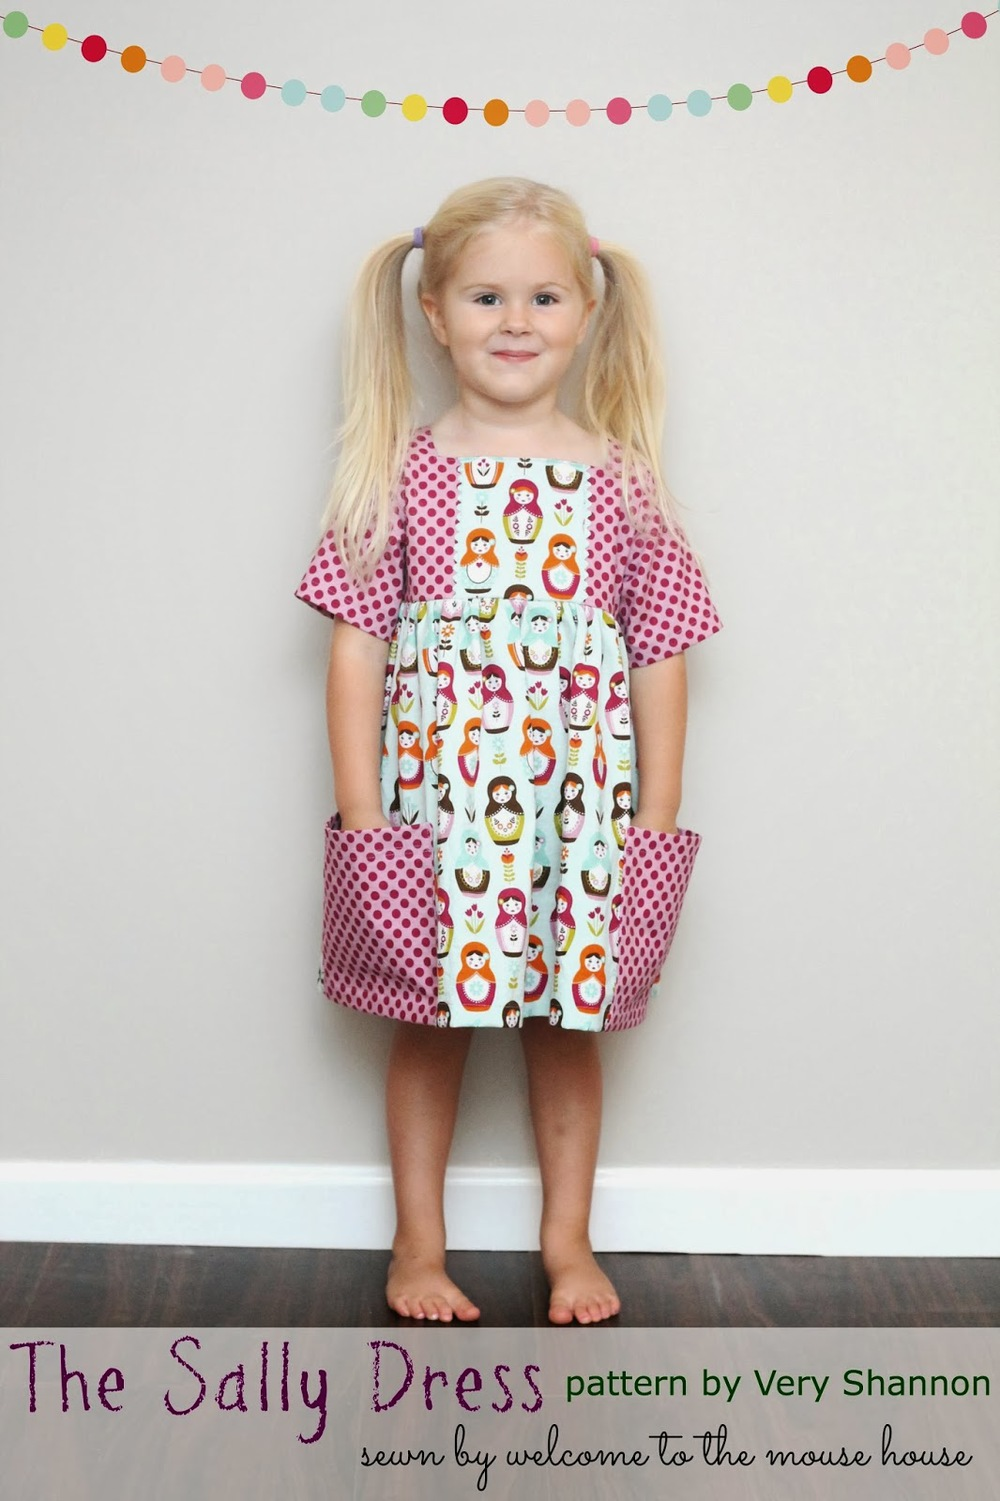 Sally Dress Pattern by Very Shannon sewn by Welcome to the Mouse House